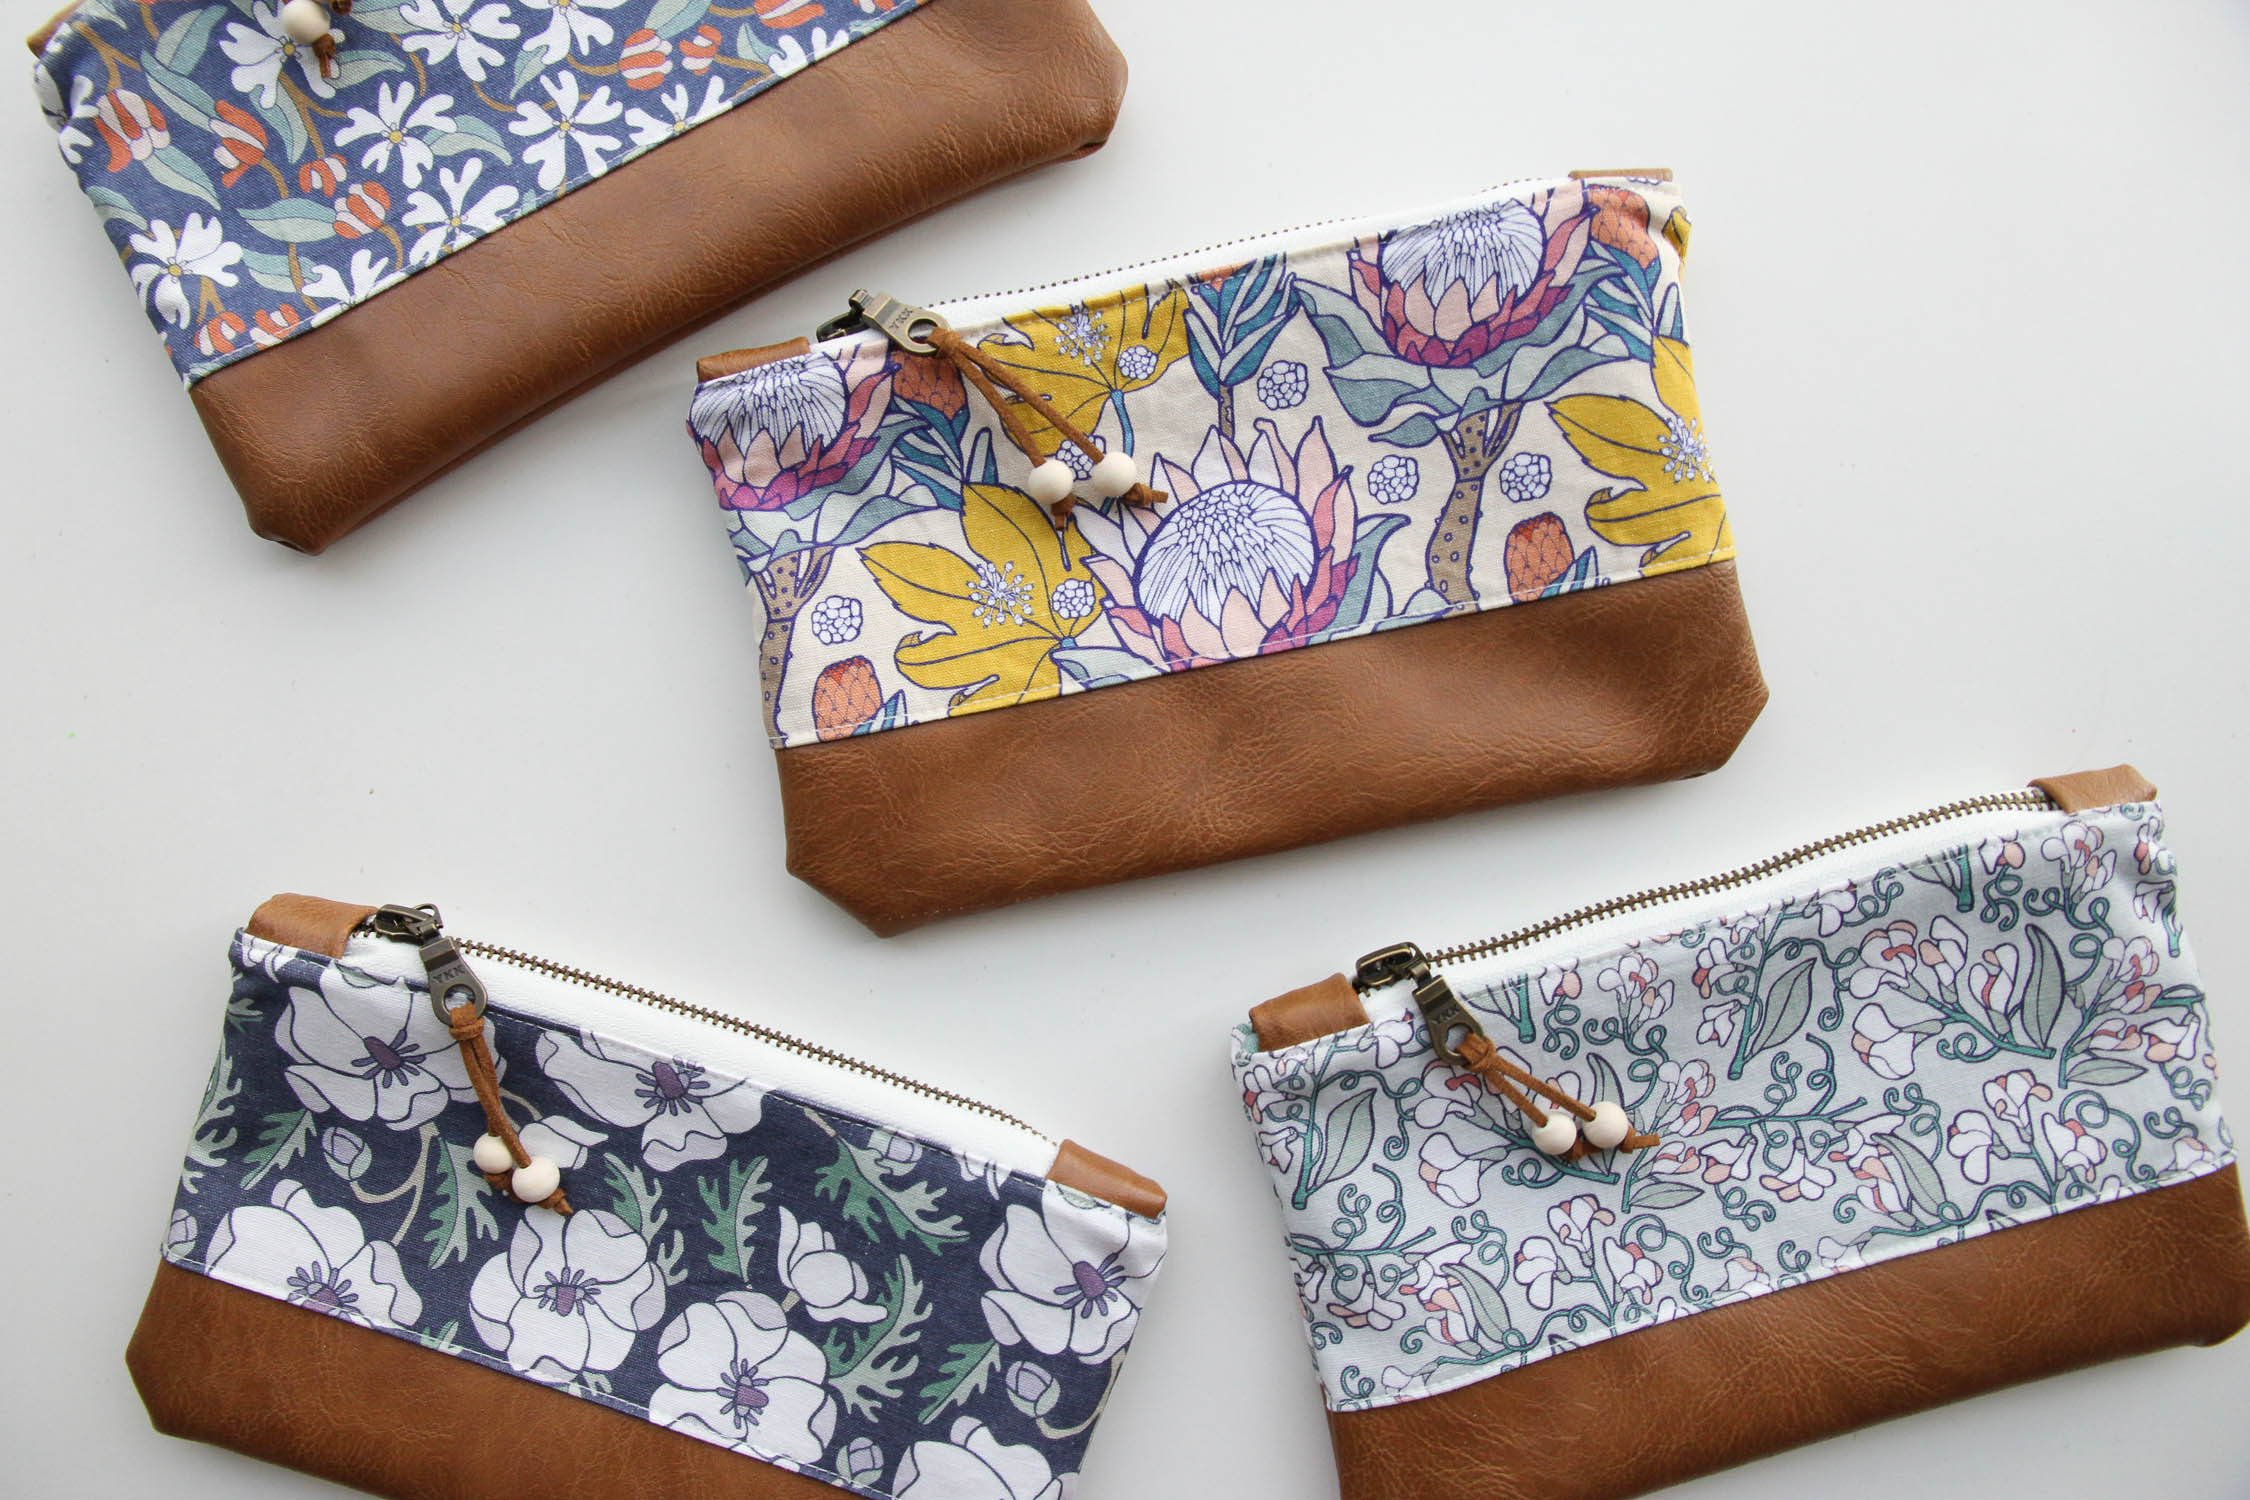 Our Zip Pouches come in 5 designs featuring our most popular floral patterns.